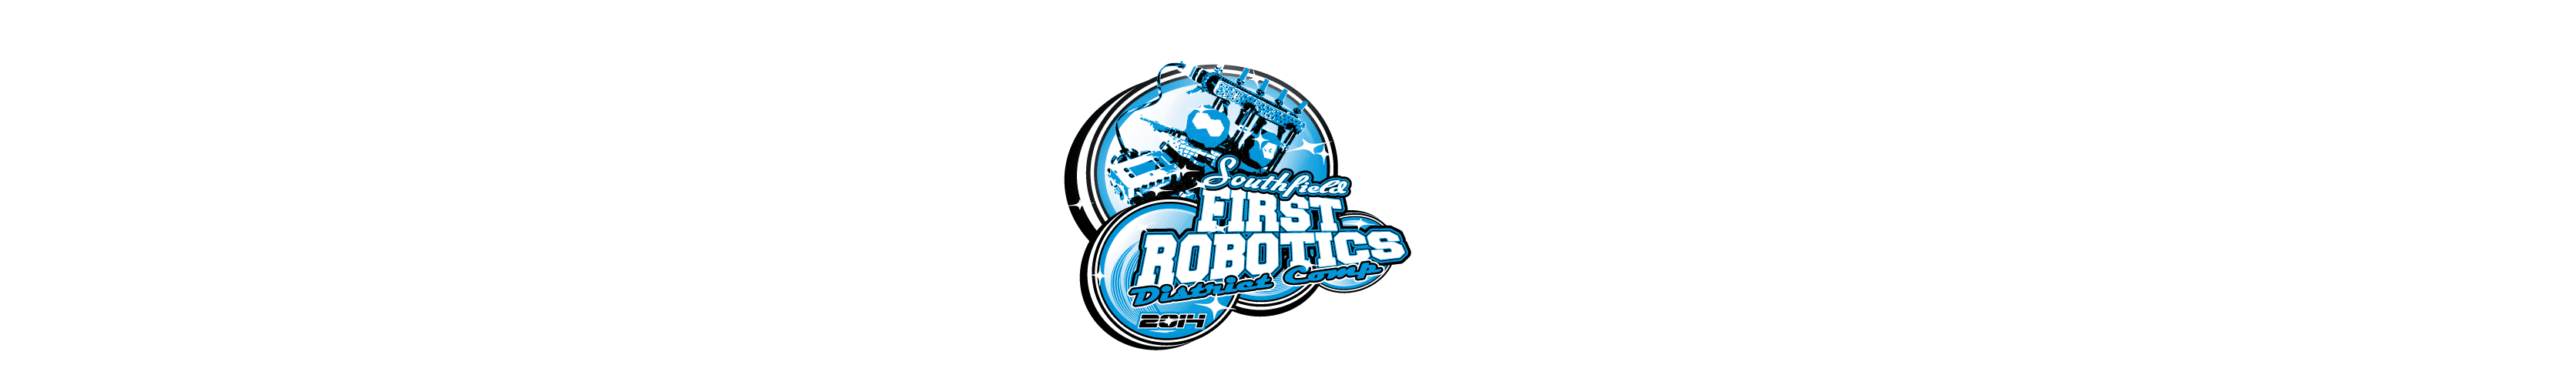 VECTOR LOGO DESIGN FOR PRINT FIRST ROBOTICS EVENT